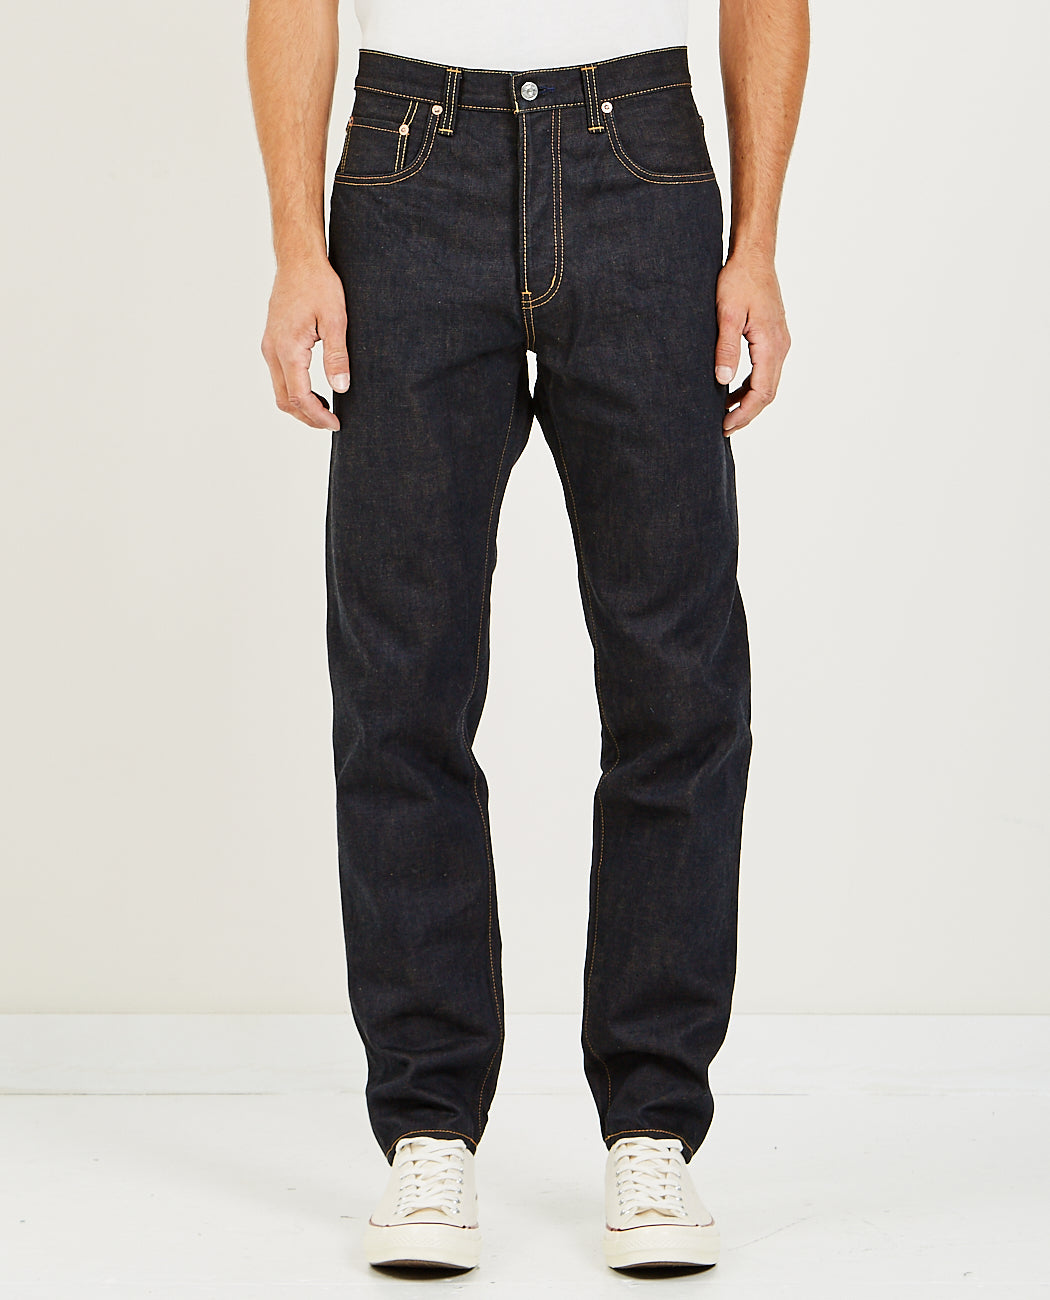 f99a6341bc Image depicting featured products. MEN S DENIM